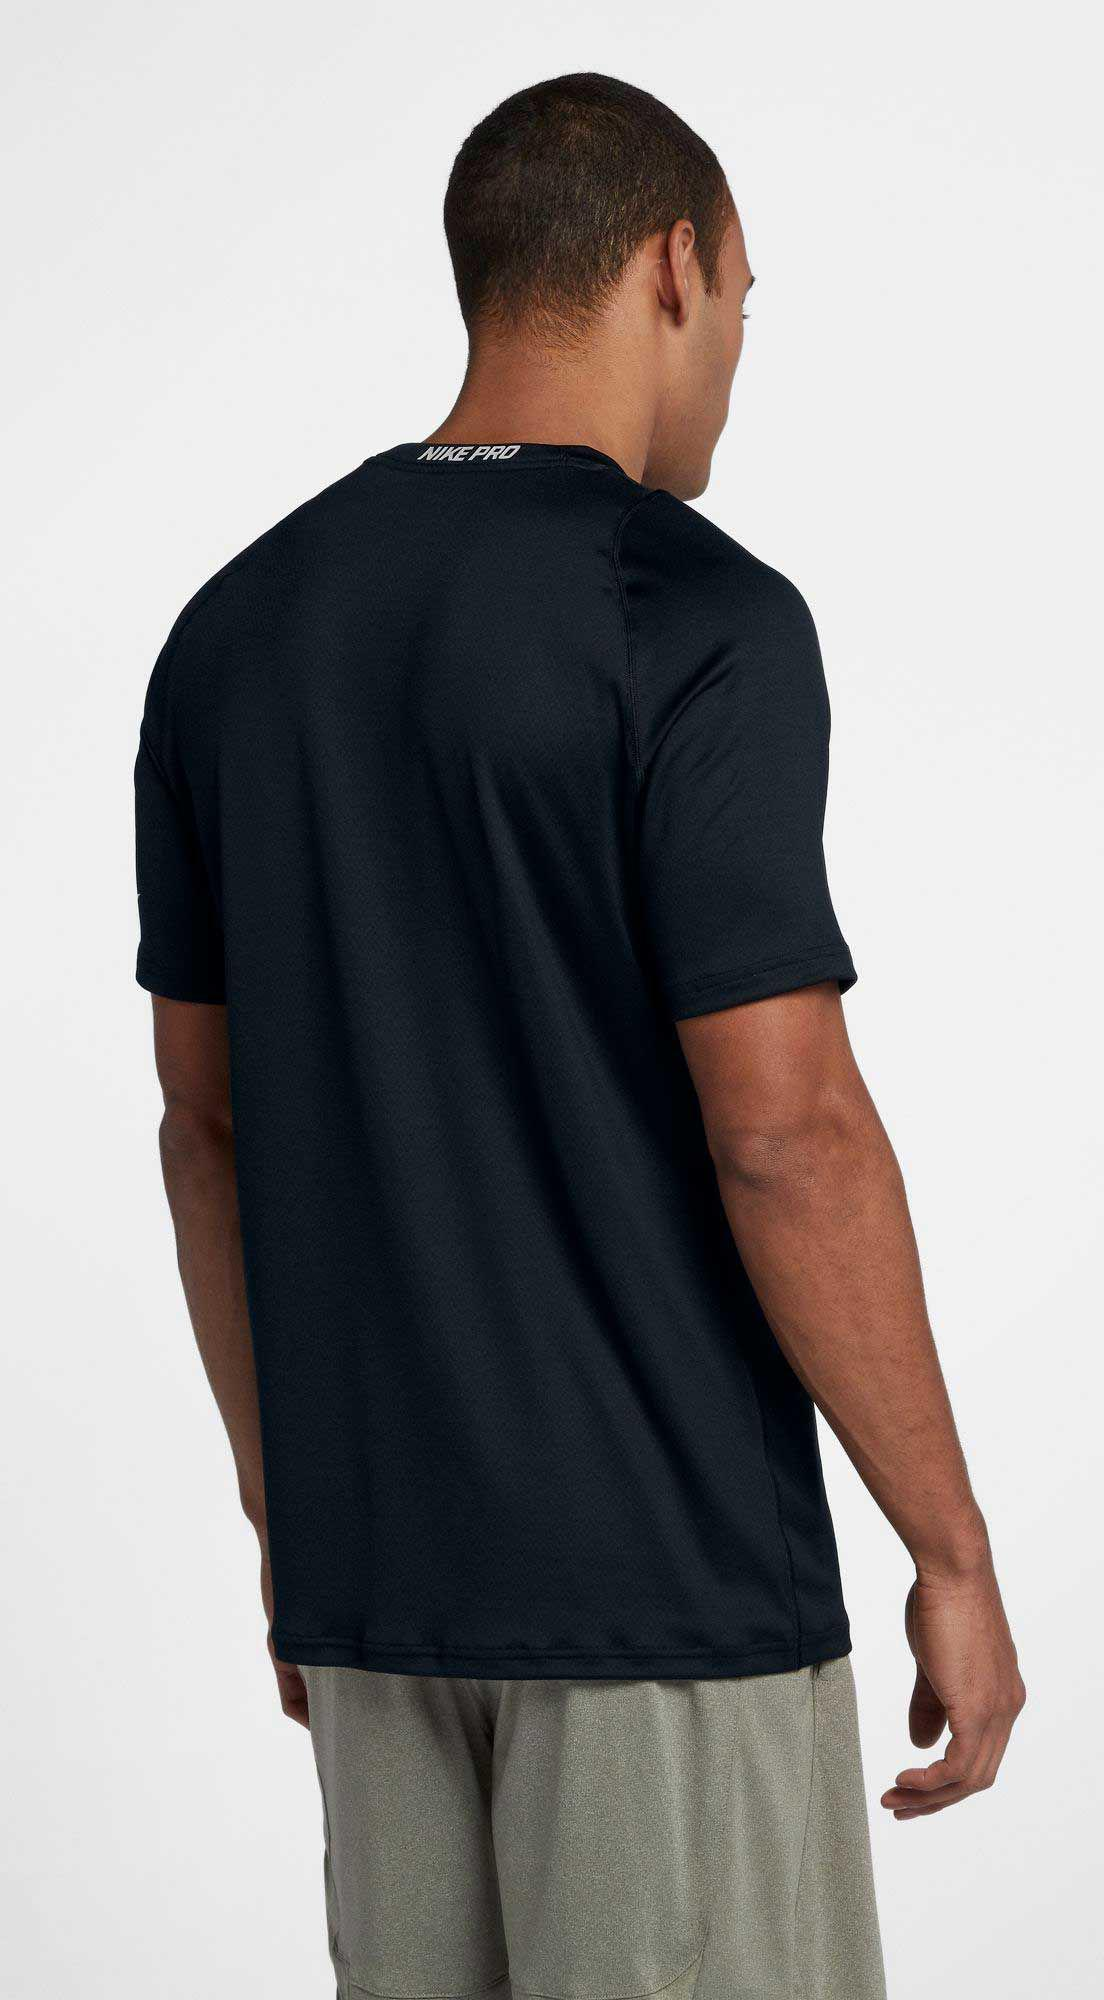 40c007265c Nike Pro Colorburst 2 T-shirt in Black for Men - Lyst